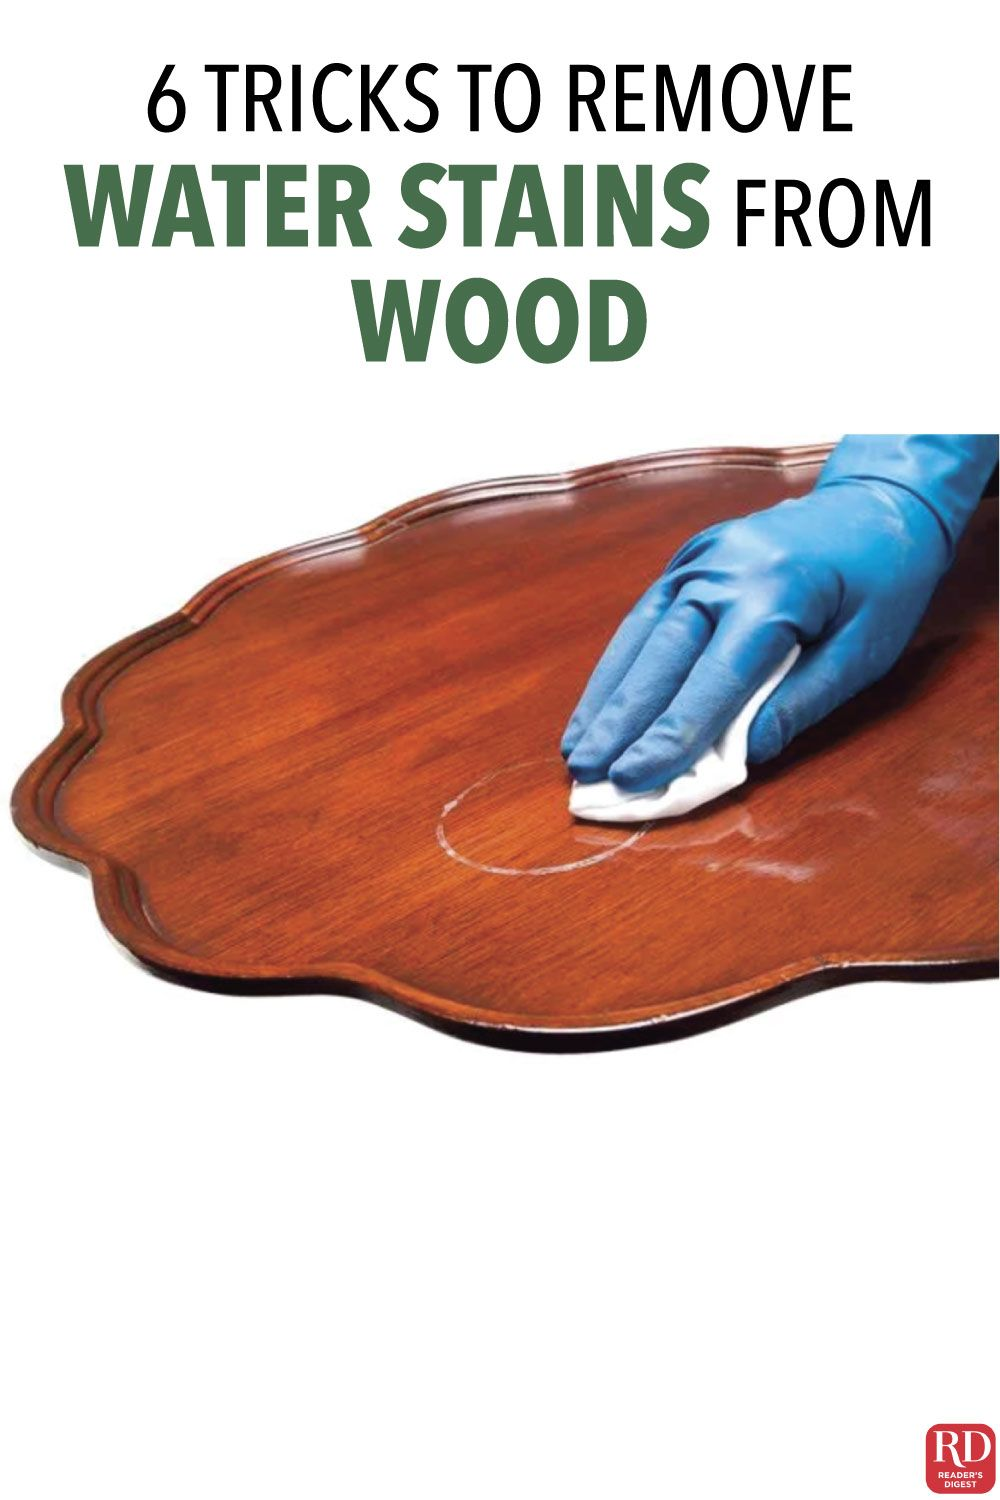 How To Remove Water Stains From Wood 6 Tricks To Try Remove